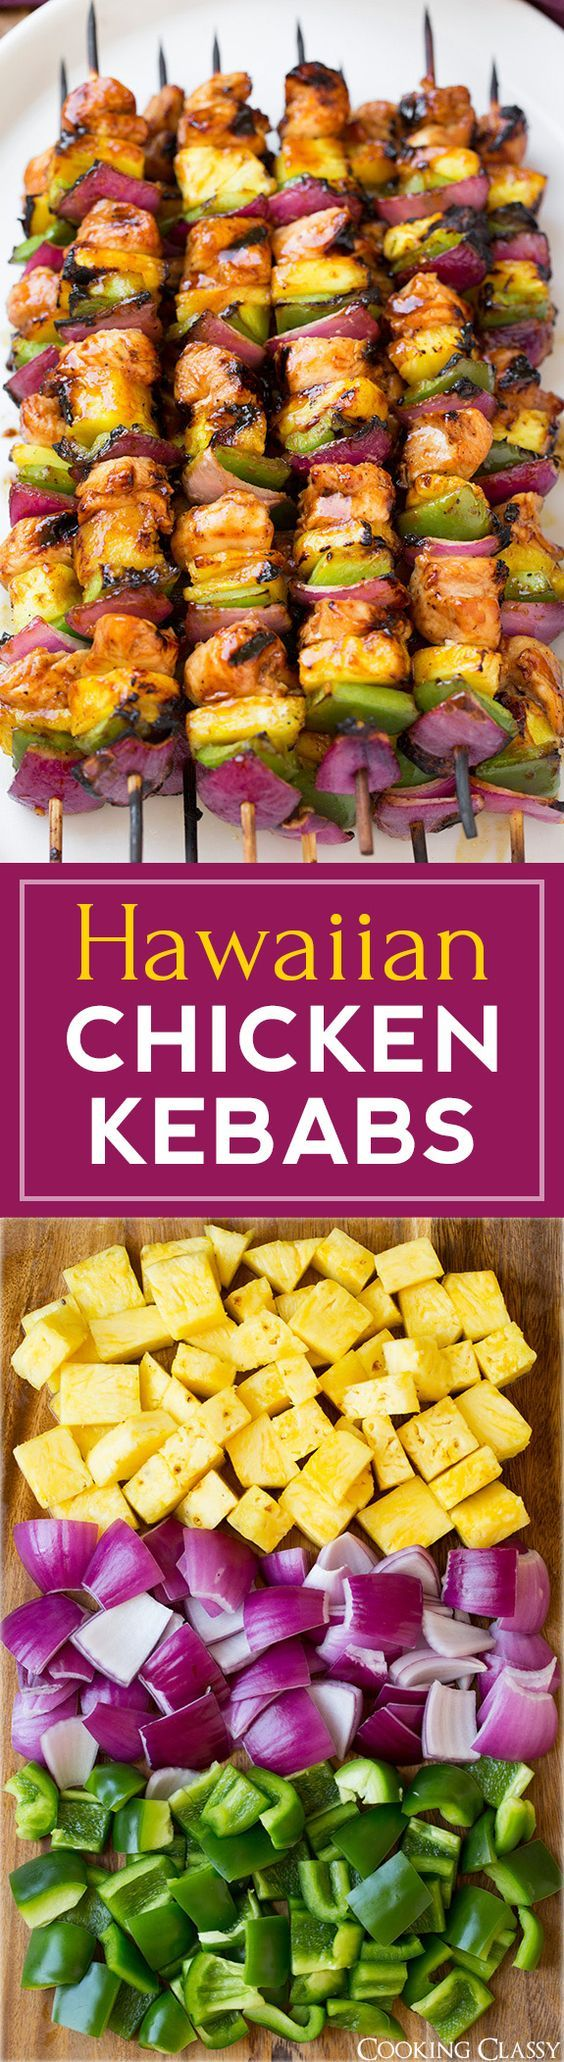 Hawaiian Chicken Kebabs (with Pineapple!) - Cooking Classy